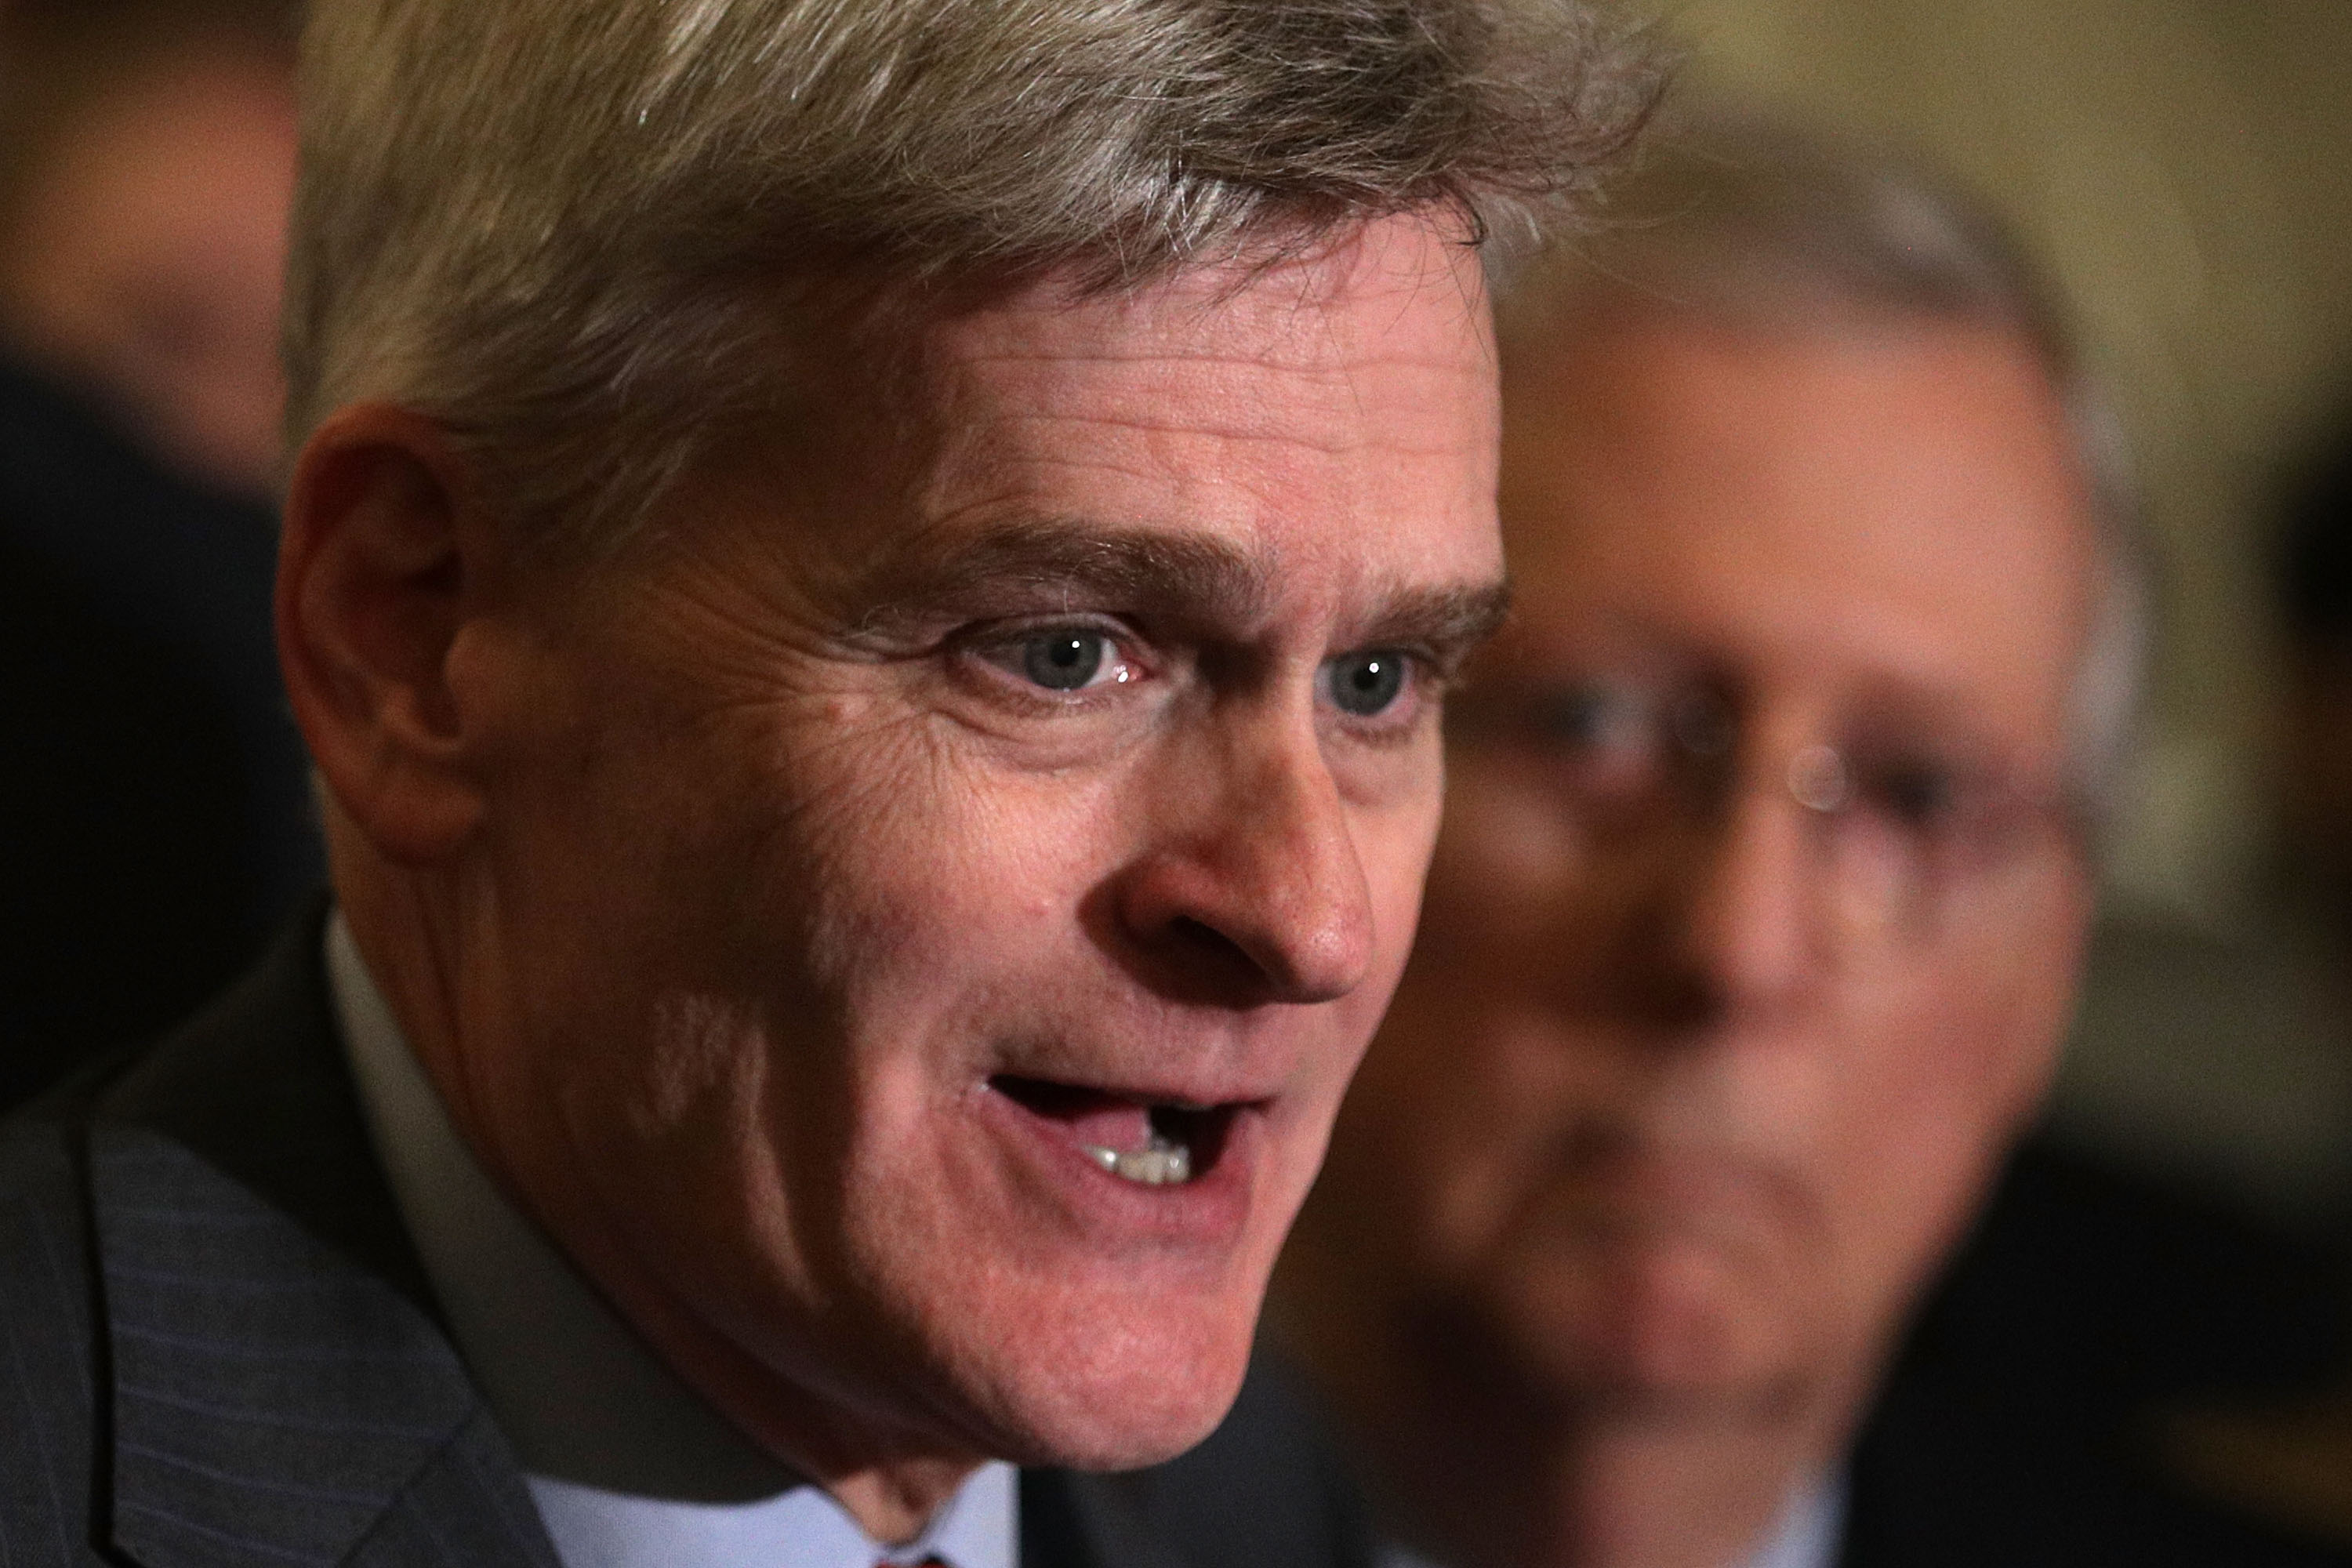 WASHINGTON, DC - SEPTEMBER 19: U.S. Sen. Bill Cassidy (R-LA) (L) speaks as Senate Majority Leader Sen. Mitch McConnell (R-KY) (R) listens during a news briefing after the weekly Senate Republican policy luncheon at the Capitol September 19, 2017 in Washington, DC. Senate Republican held a weekly policy luncheon to discuss GOP agenda. (Photo by Alex Wong/Getty Images)